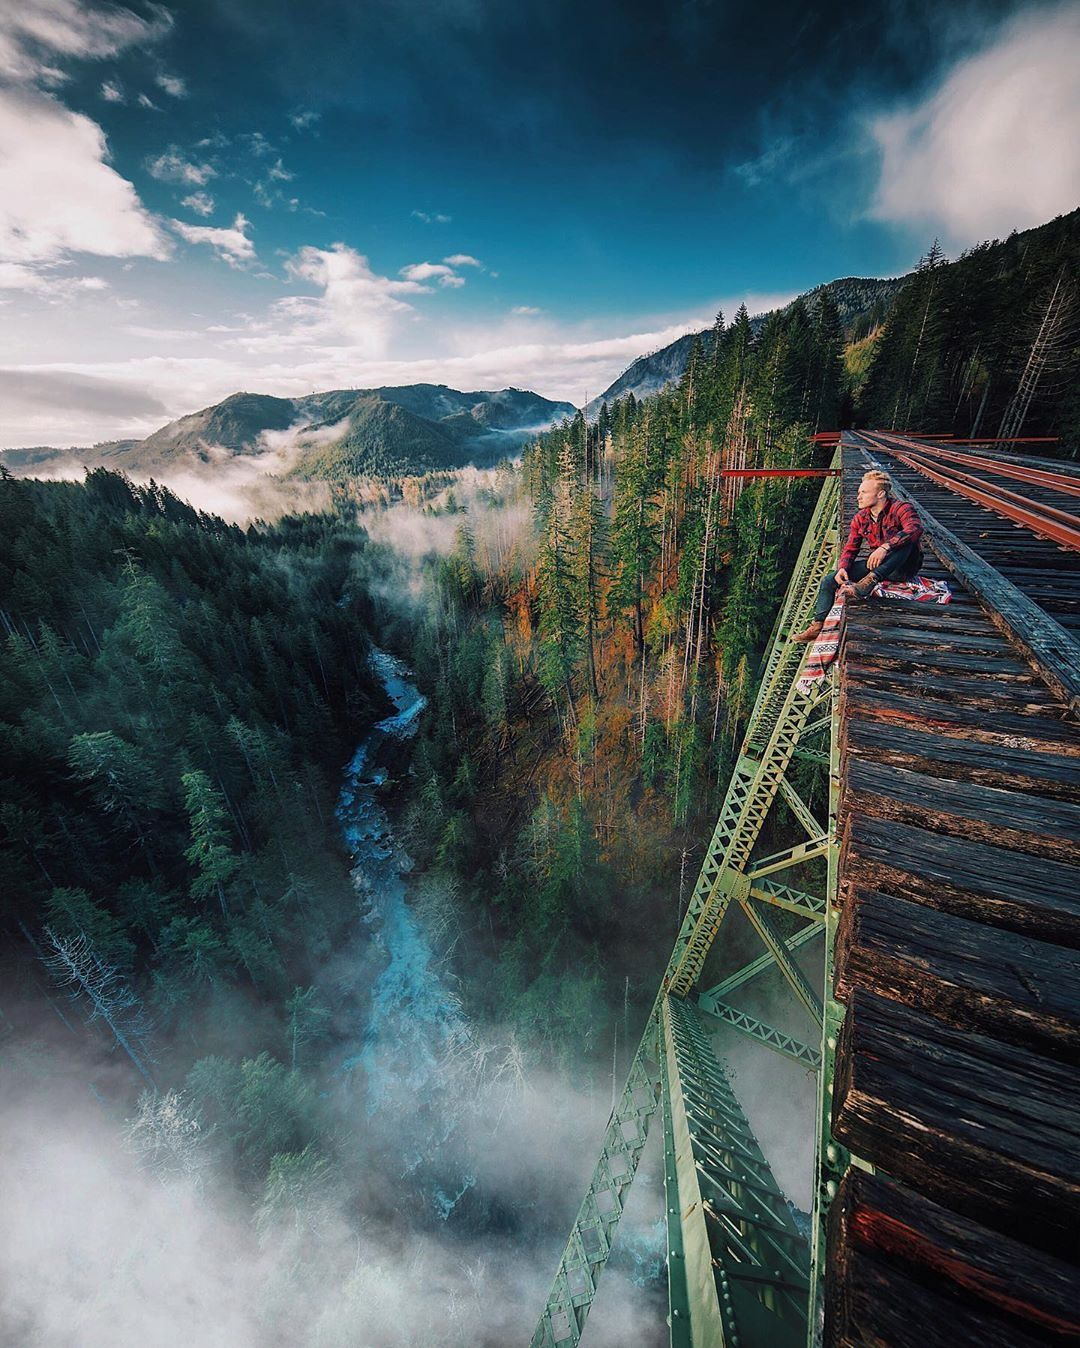 Bridge Fog Lake Landscape Mountain Nature Outdoors River Rock Scenic Tree Valley Water In 2020 Beautiful Destinations Travel Photography Places To Travel